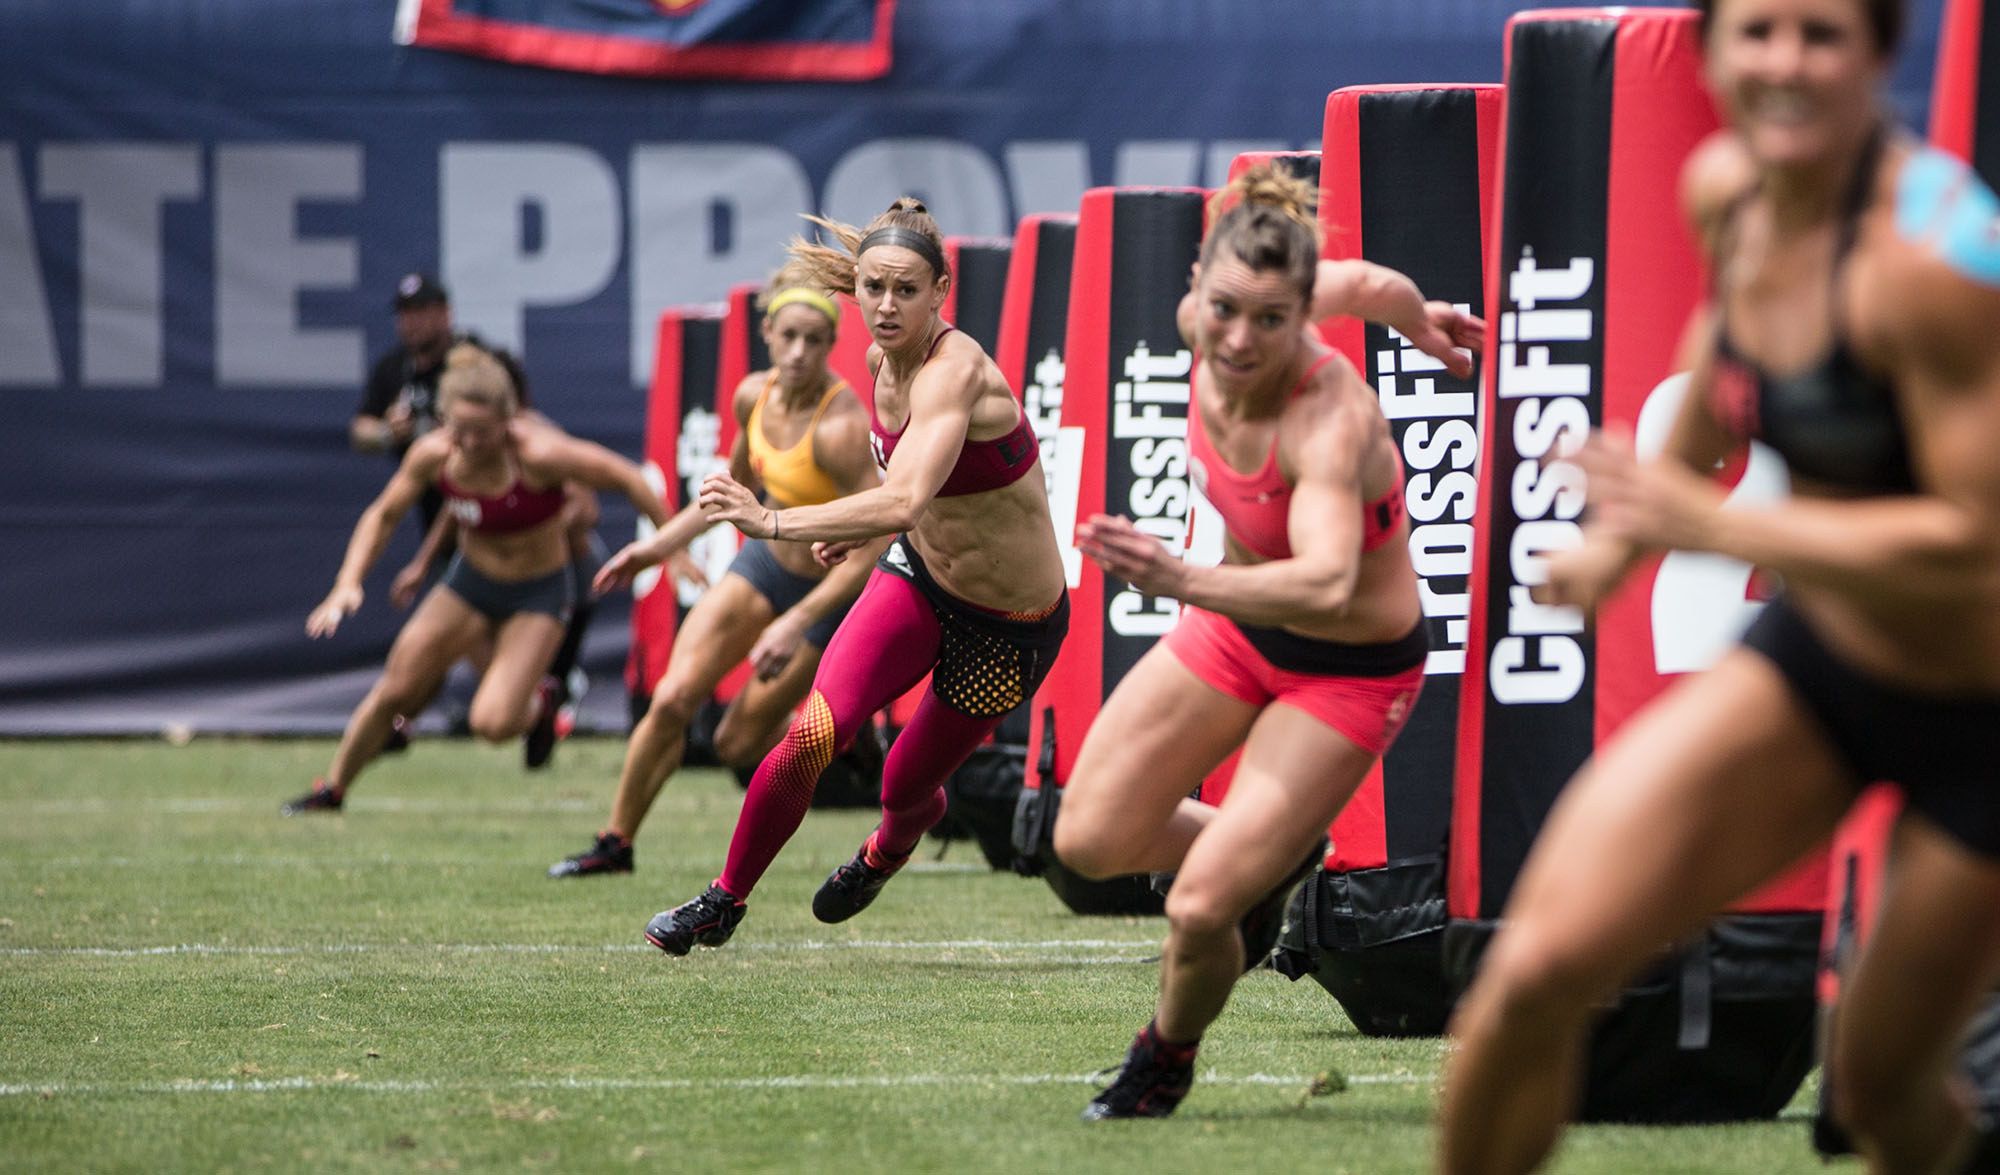 2a4b5c3c8b6a1 How to Watch CrossFit Games 2018 Without Cable : Live Stream Online ...